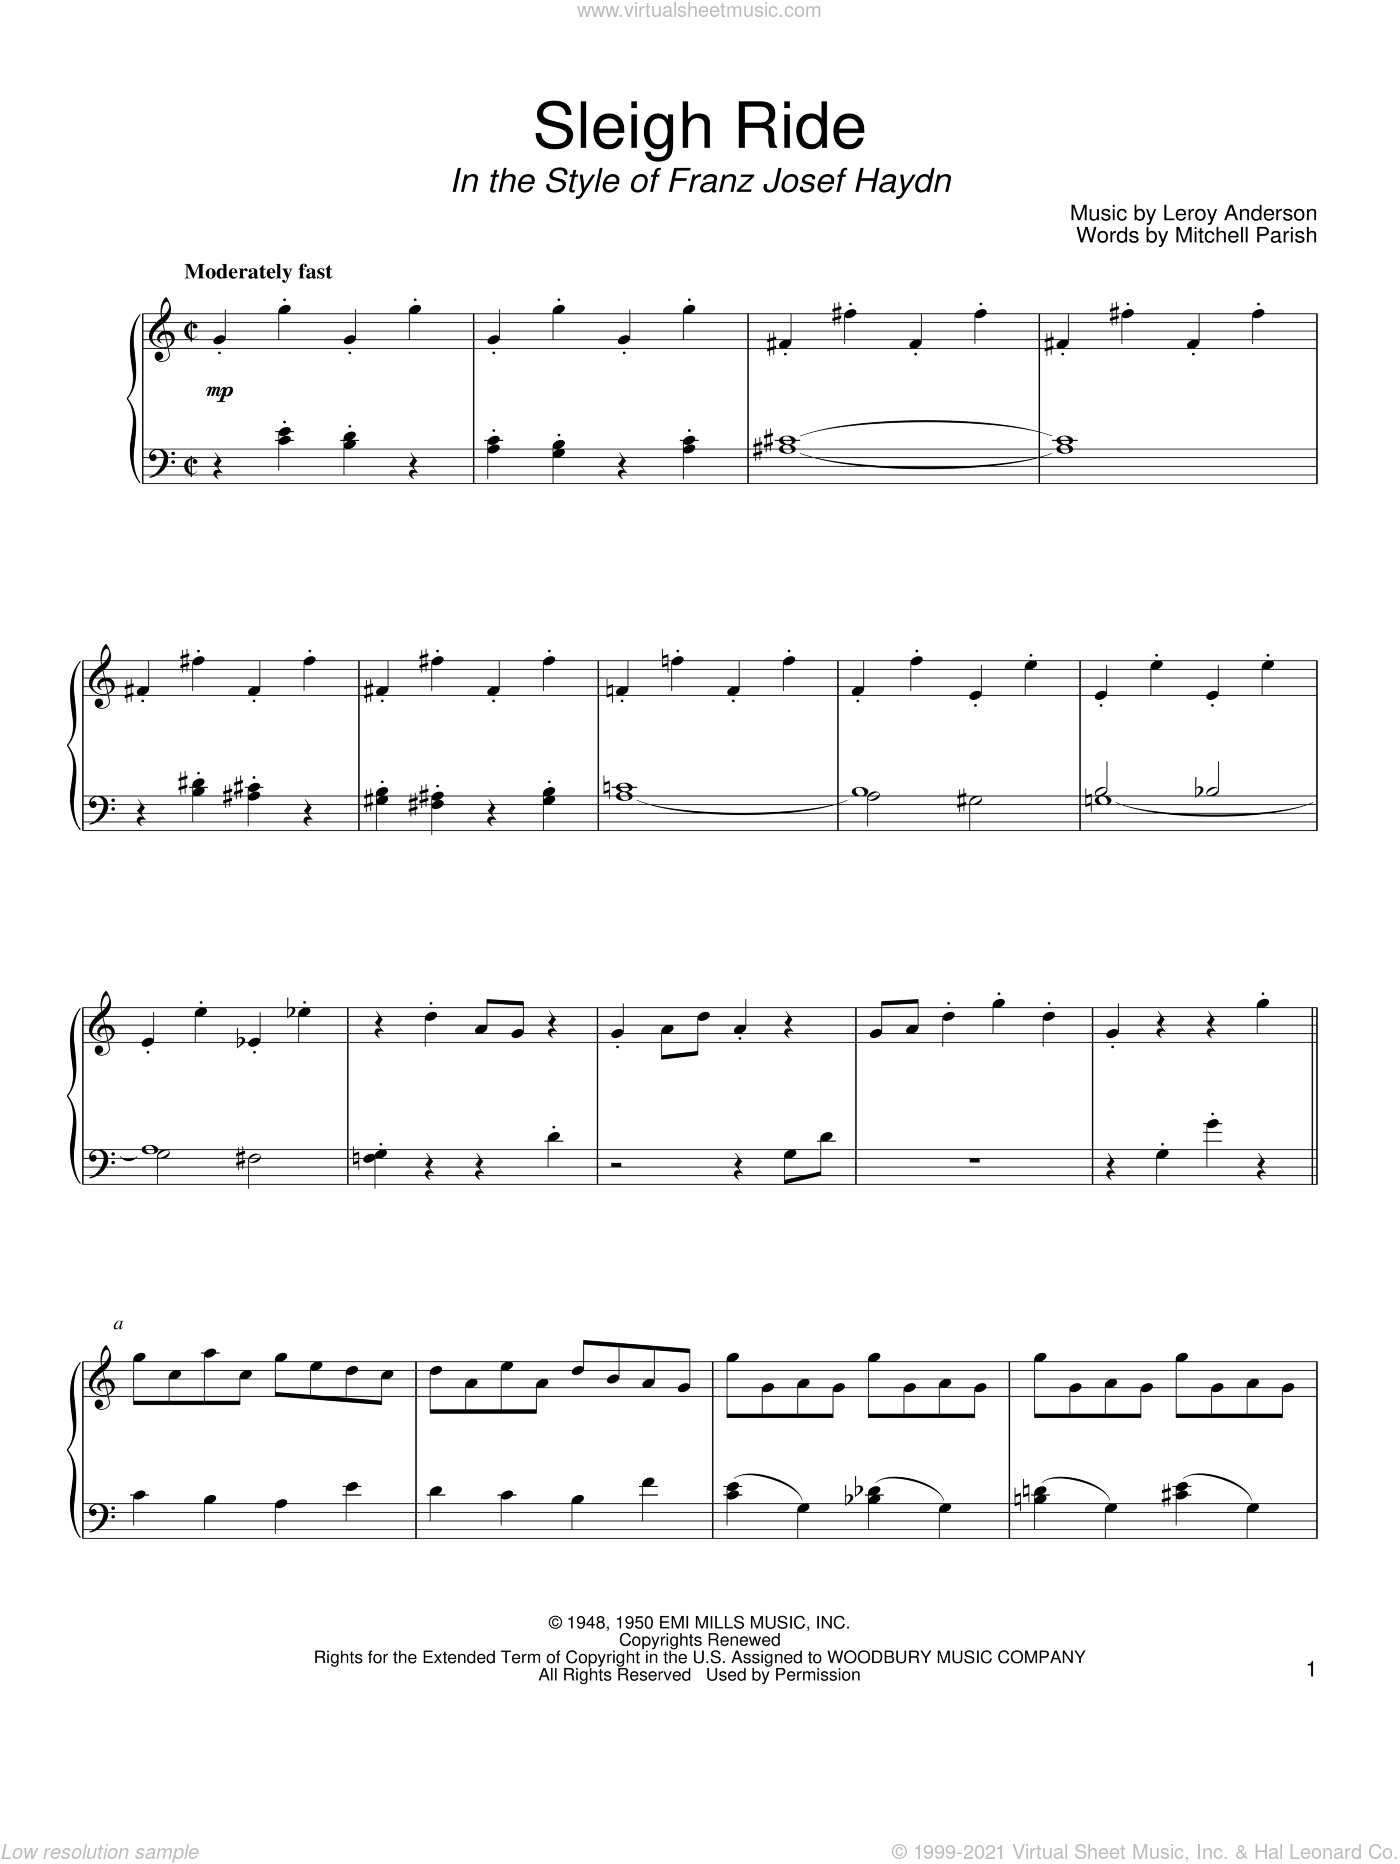 Sleigh Ride (in the style of Franz Josef Haydn) sheet music for piano solo by Leroy Anderson, David Pearl and Mitchell Parish, intermediate skill level